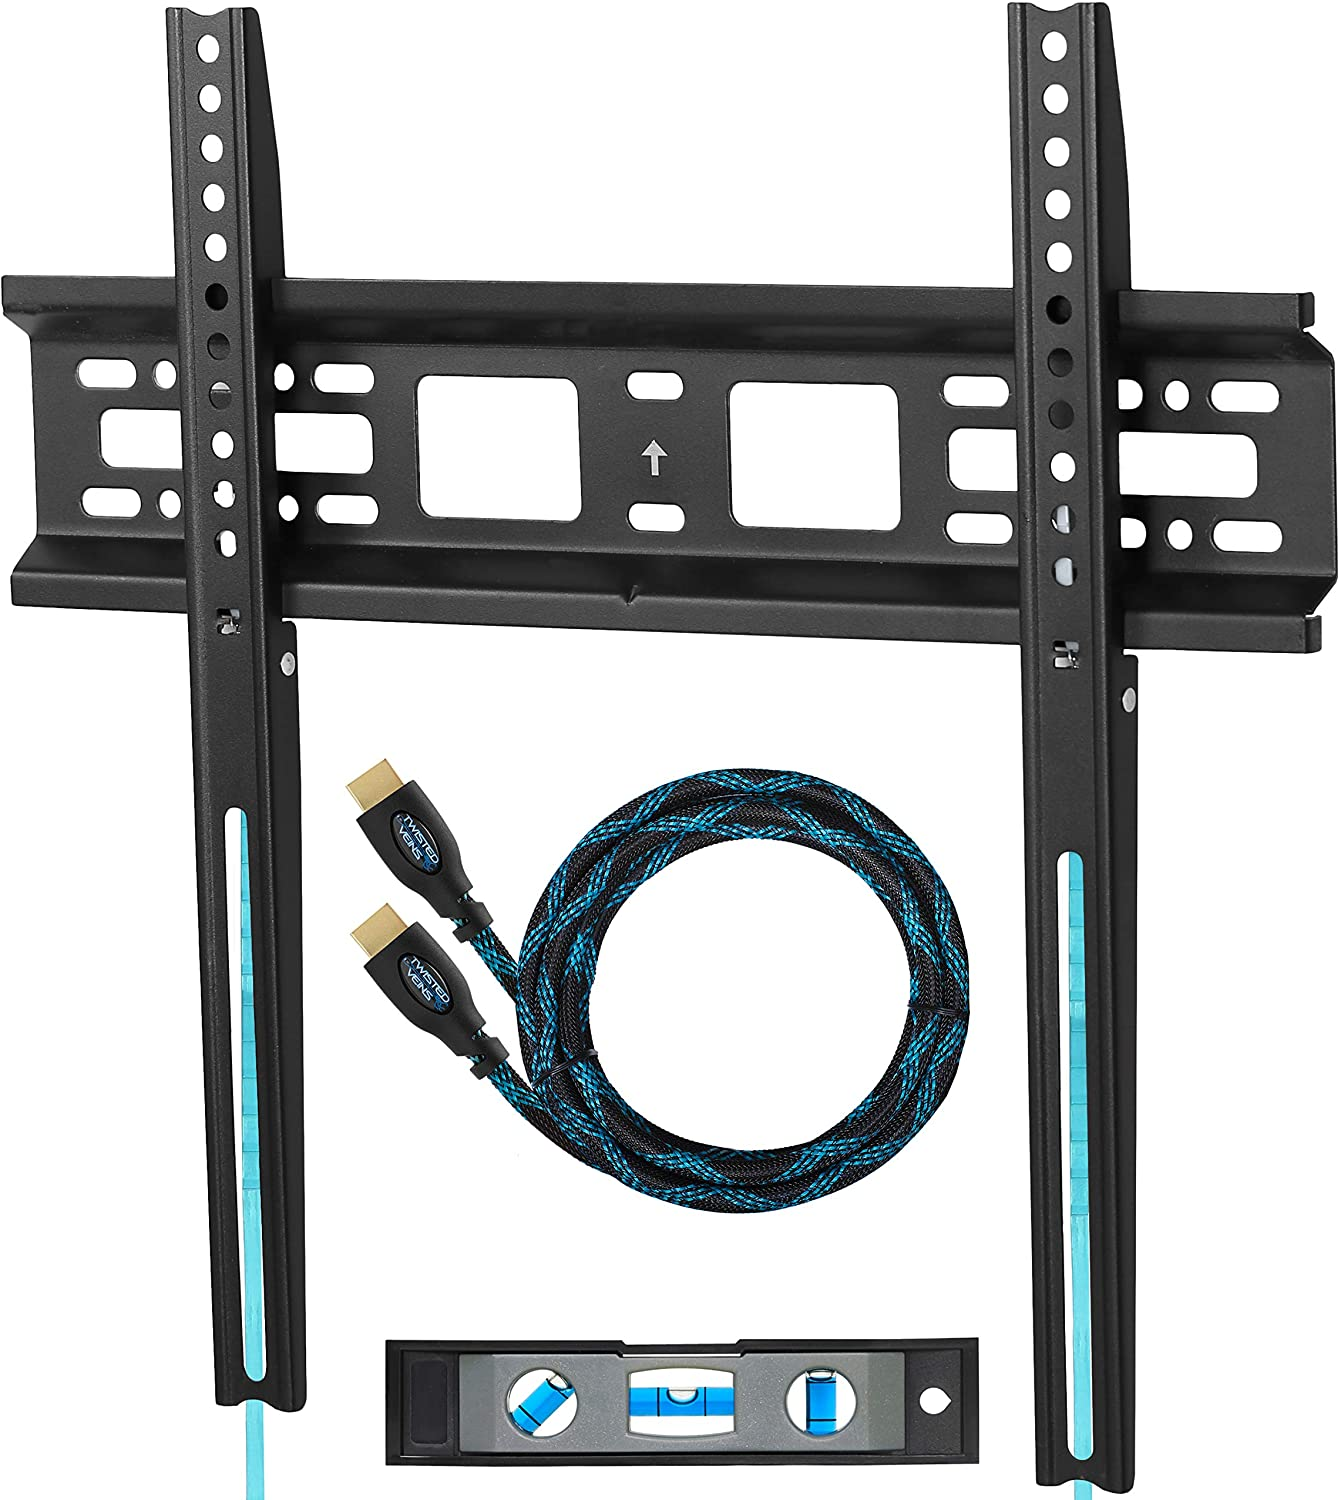 """Cheetah Mounts APFMSB TV Wall Mount Bracket for 20-55"""" TVs Up to VESA 400 and 115 lbs Including a Twisted Veins 10' HDMI Cable and a 6\"""" 3-Axis Magnetic Bubble Level"""